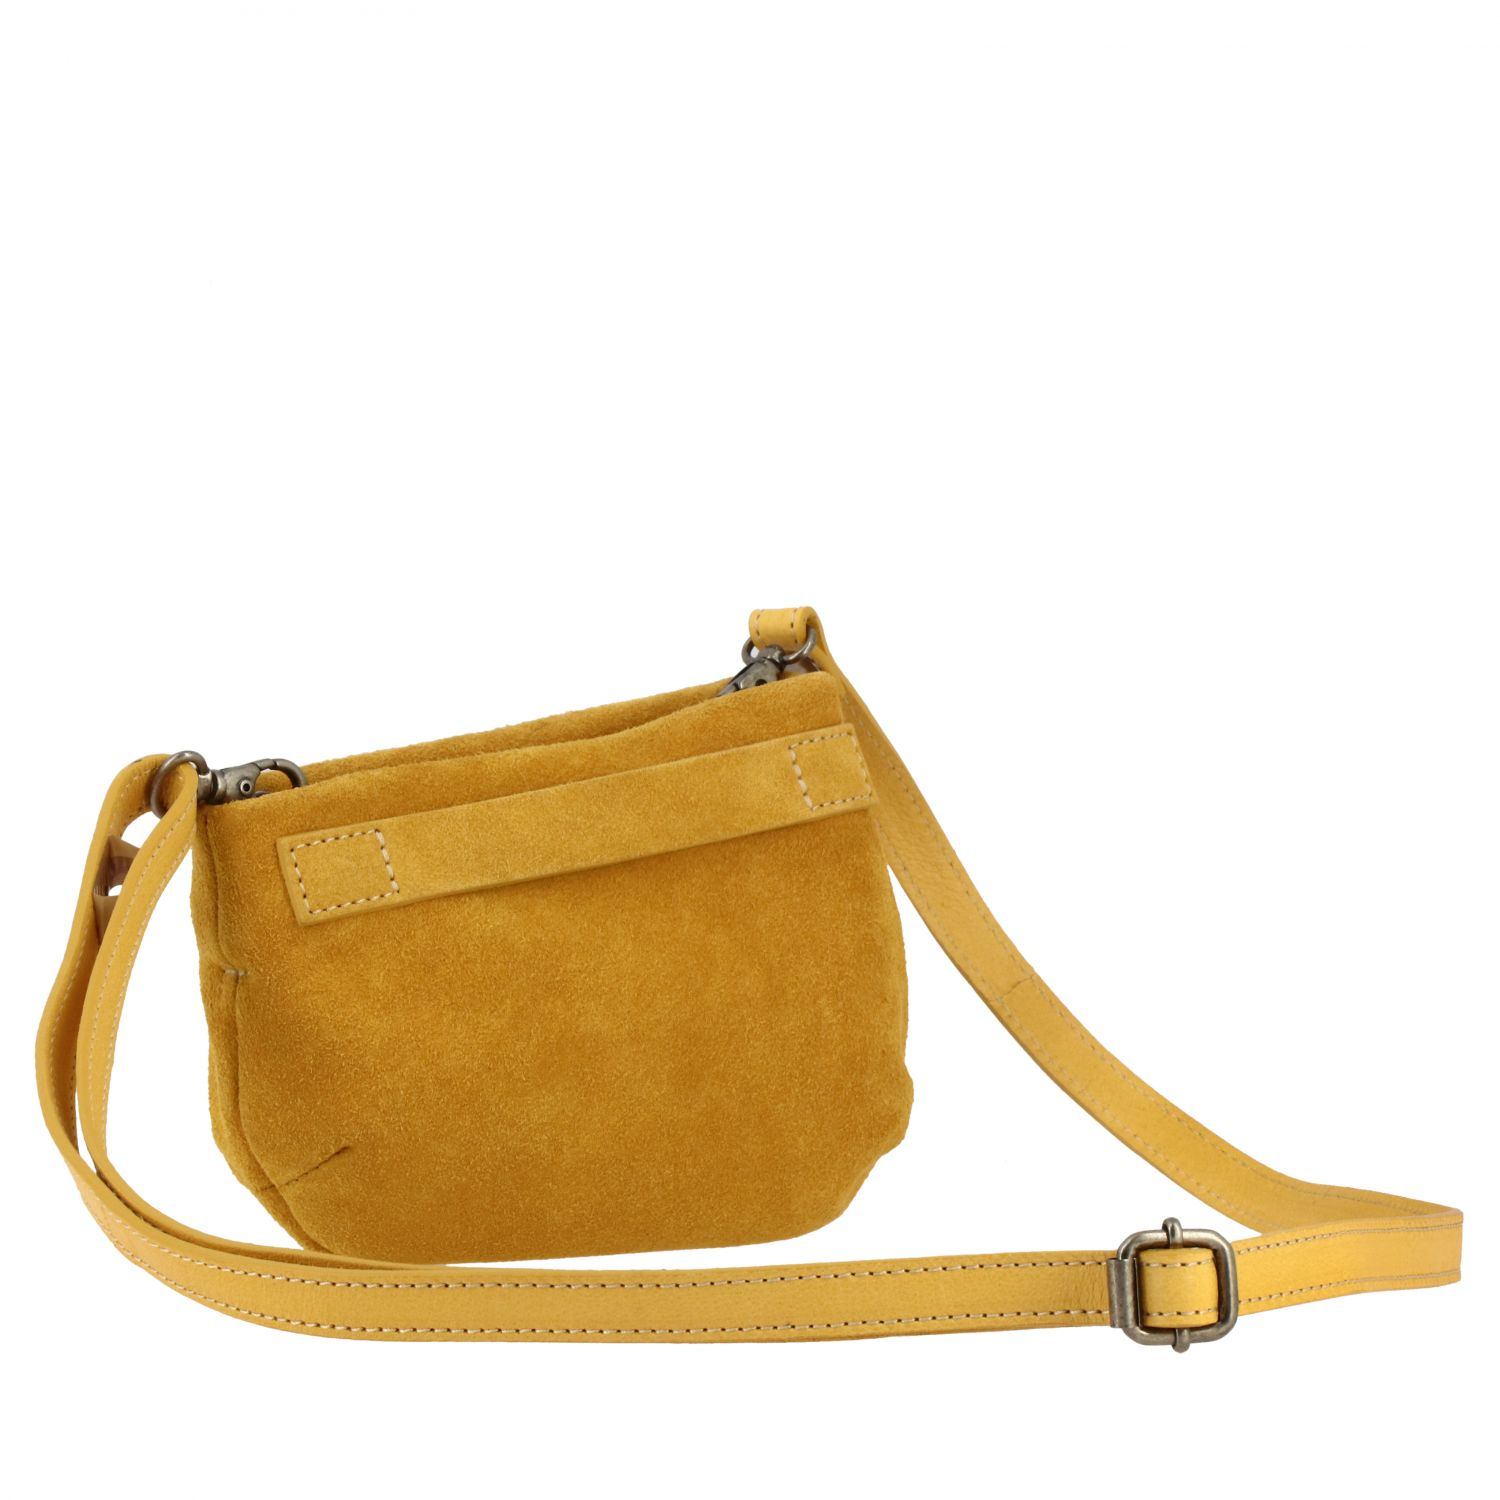 Marsell Fantasmetto shoulder bag in suede yellow 3